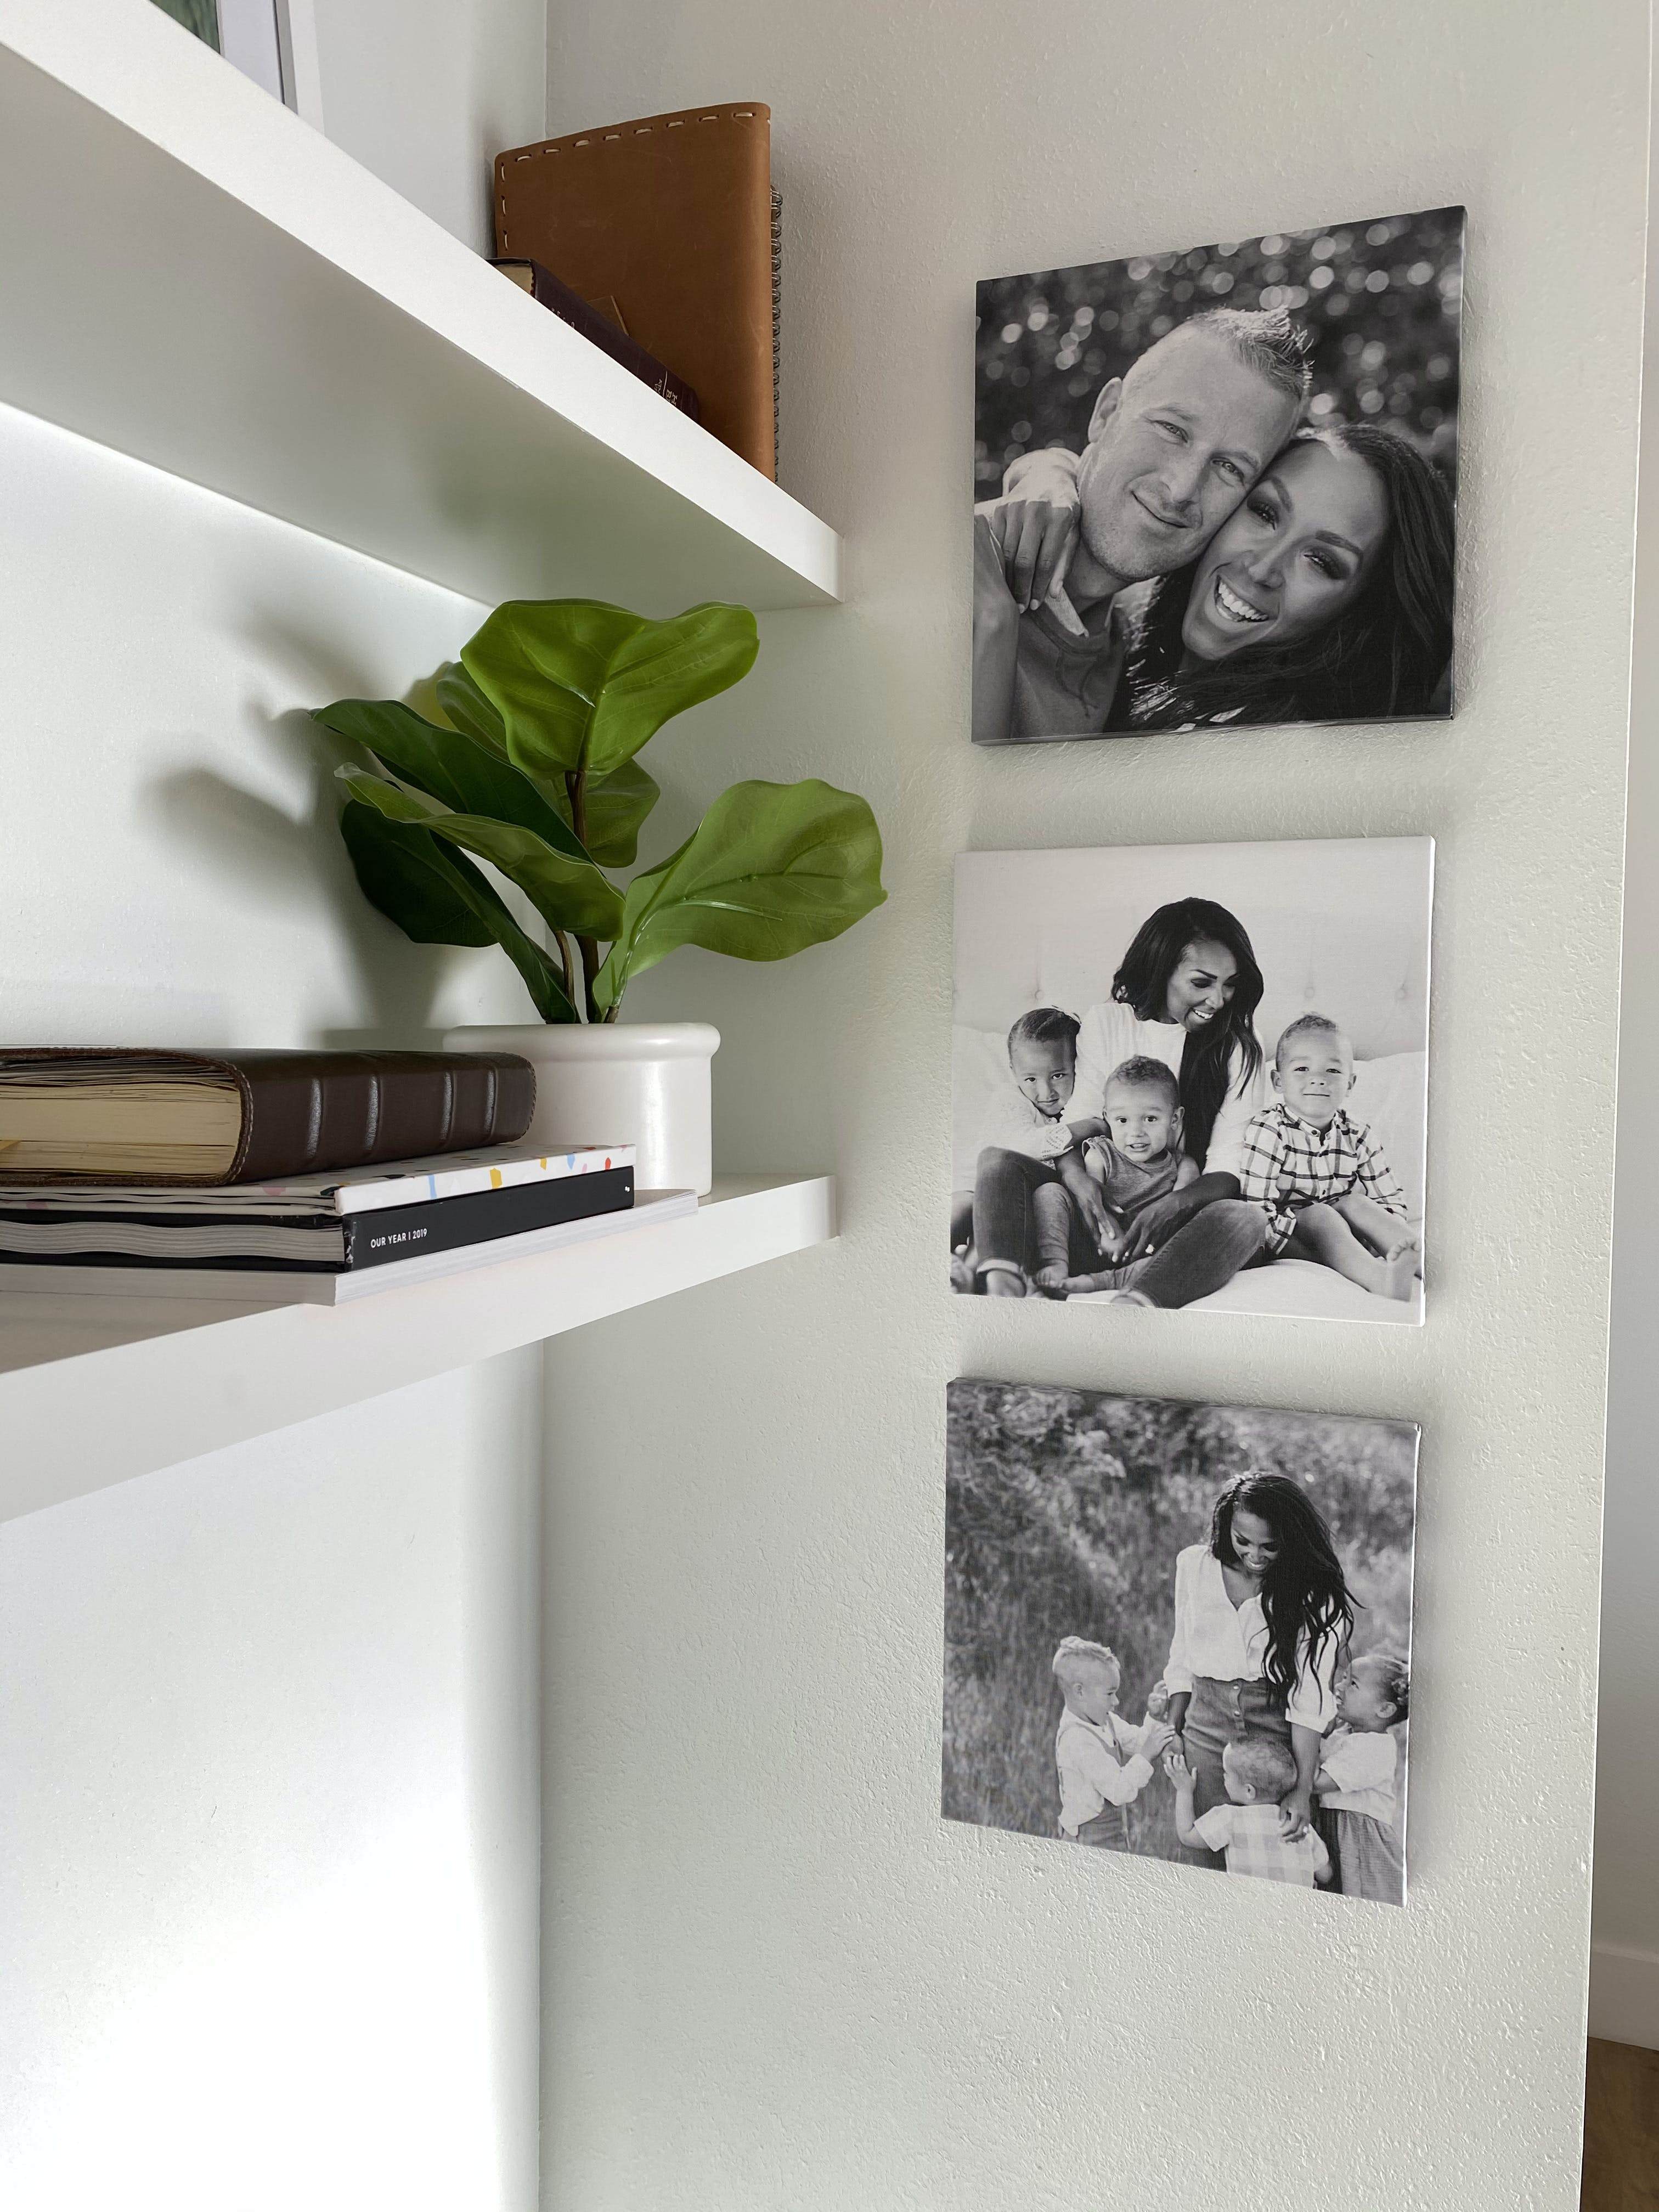 Family Photo Gallery Wall Ideas How To Display Family Photos On Wall Chatbooks